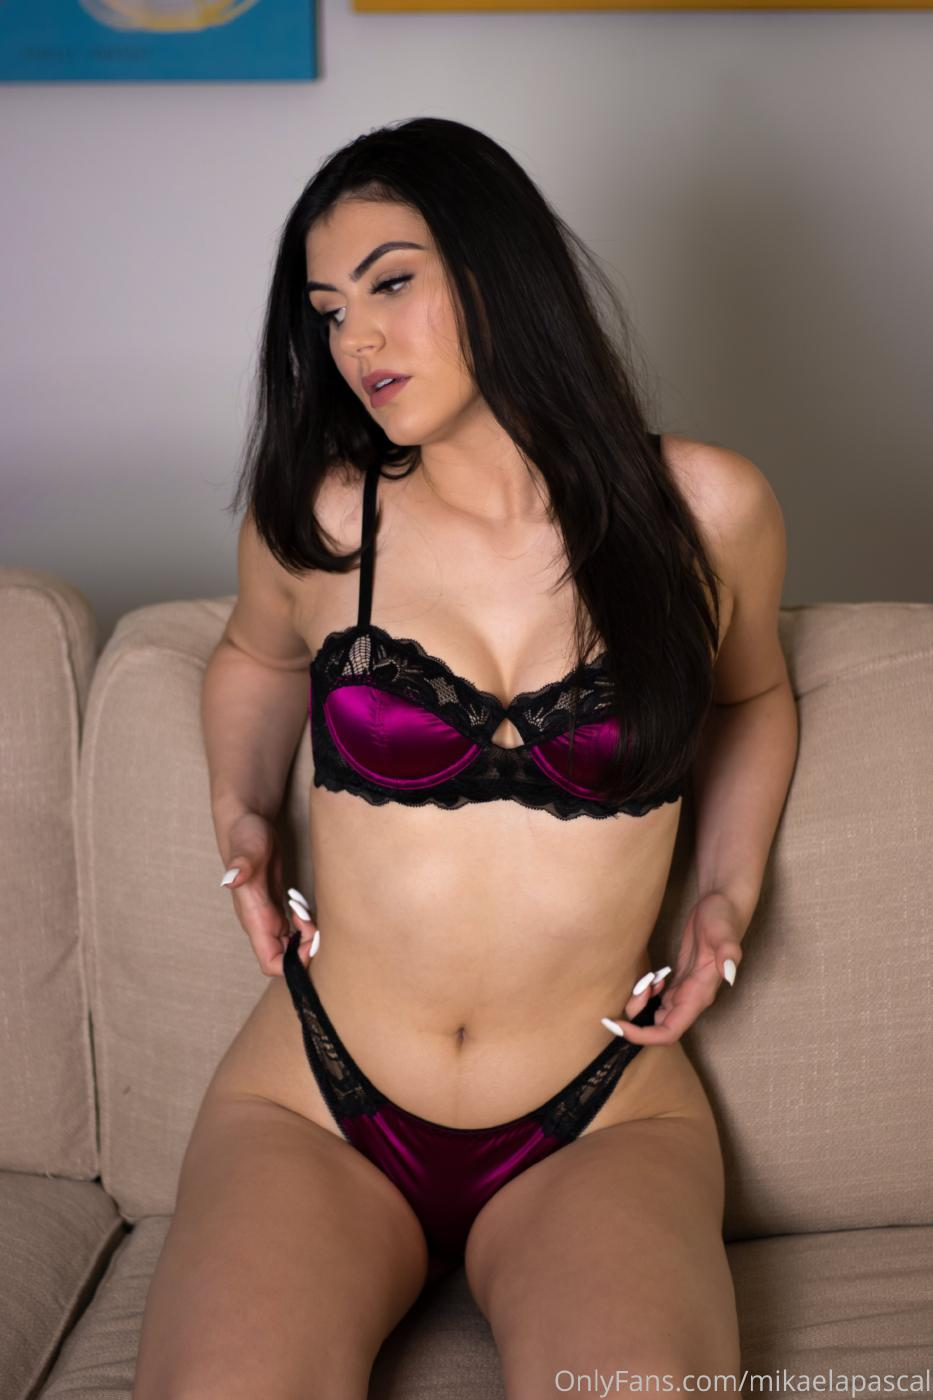 Mikaela Pascal Onlyfans April Extras Leaked 0009